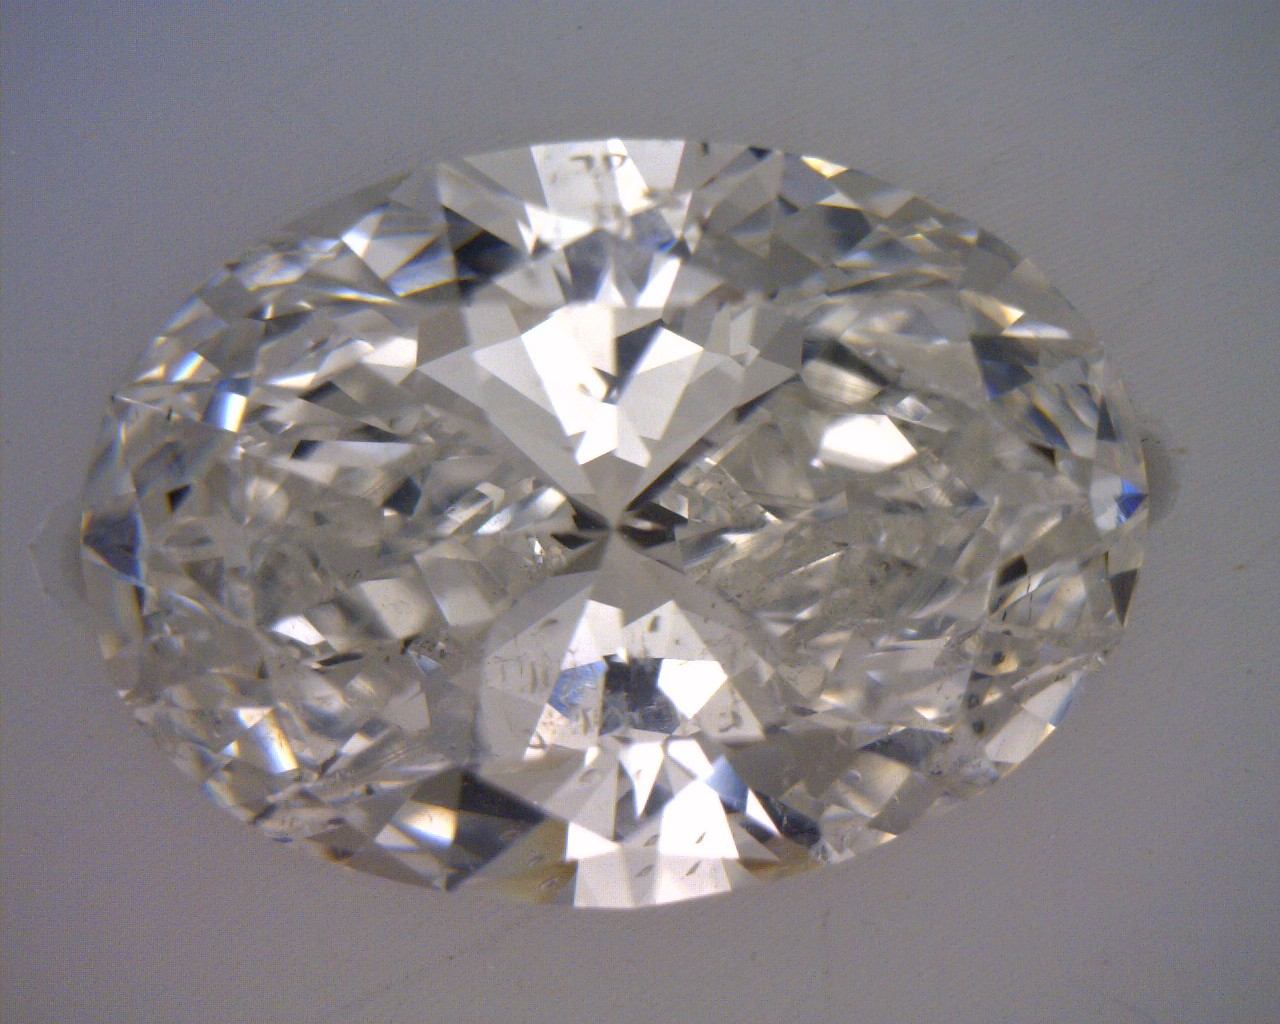 235 Carat Ct Gia Oval Loose Diamond G Color Si2 Clarity Excellent Cut